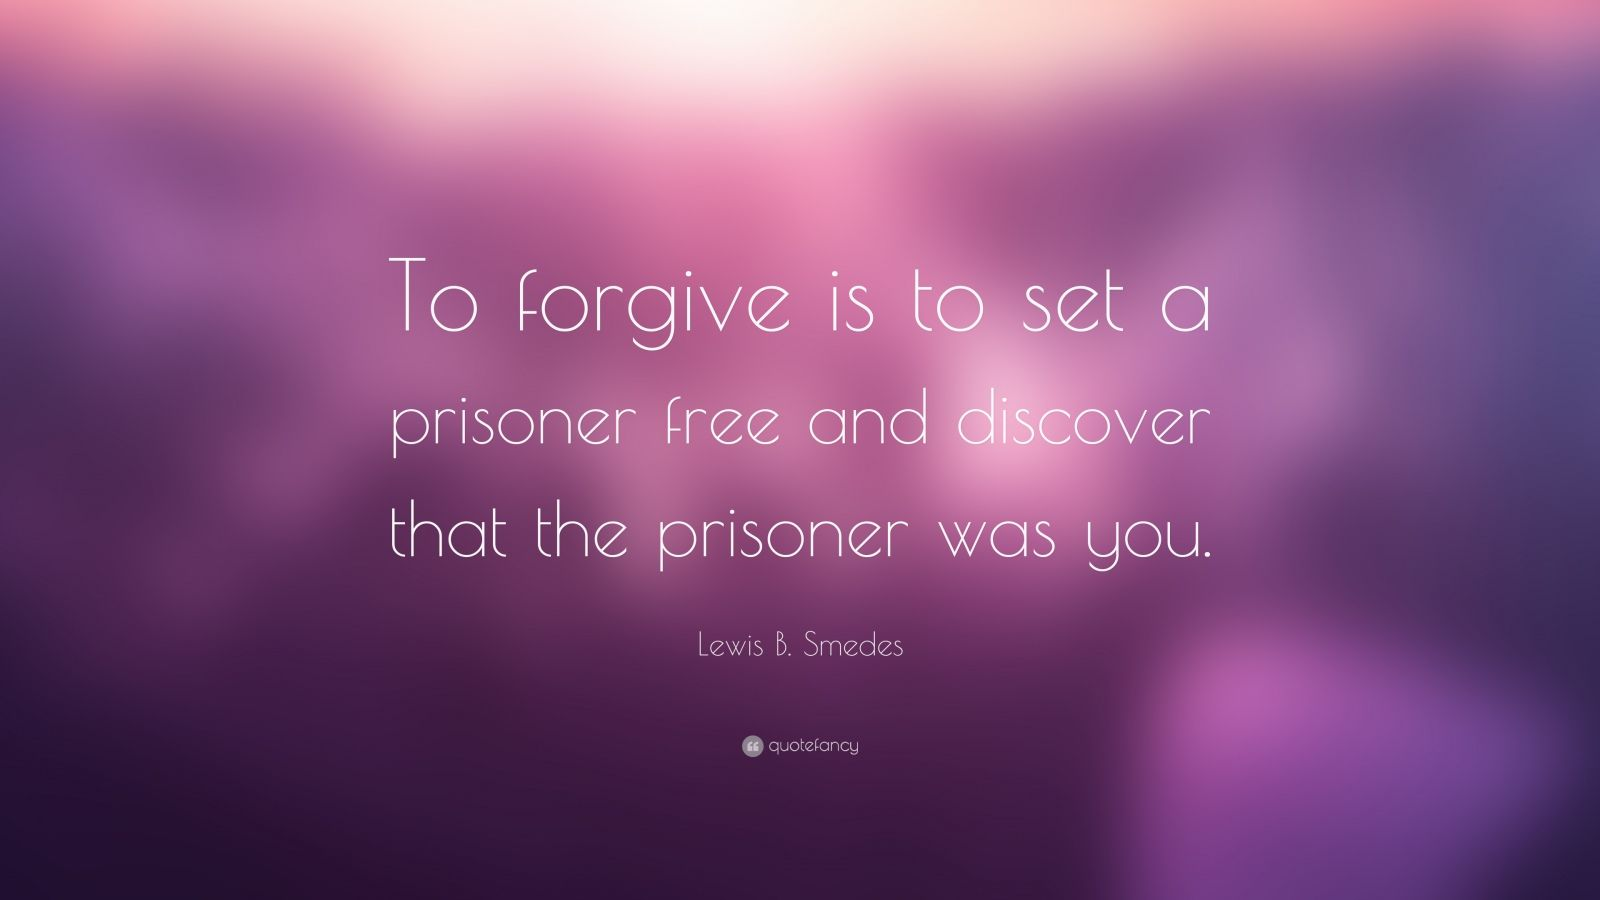 Wallpapers Philosophy Quotes Lewis B Smedes Quote To Forgive Is To Set A Prisoner